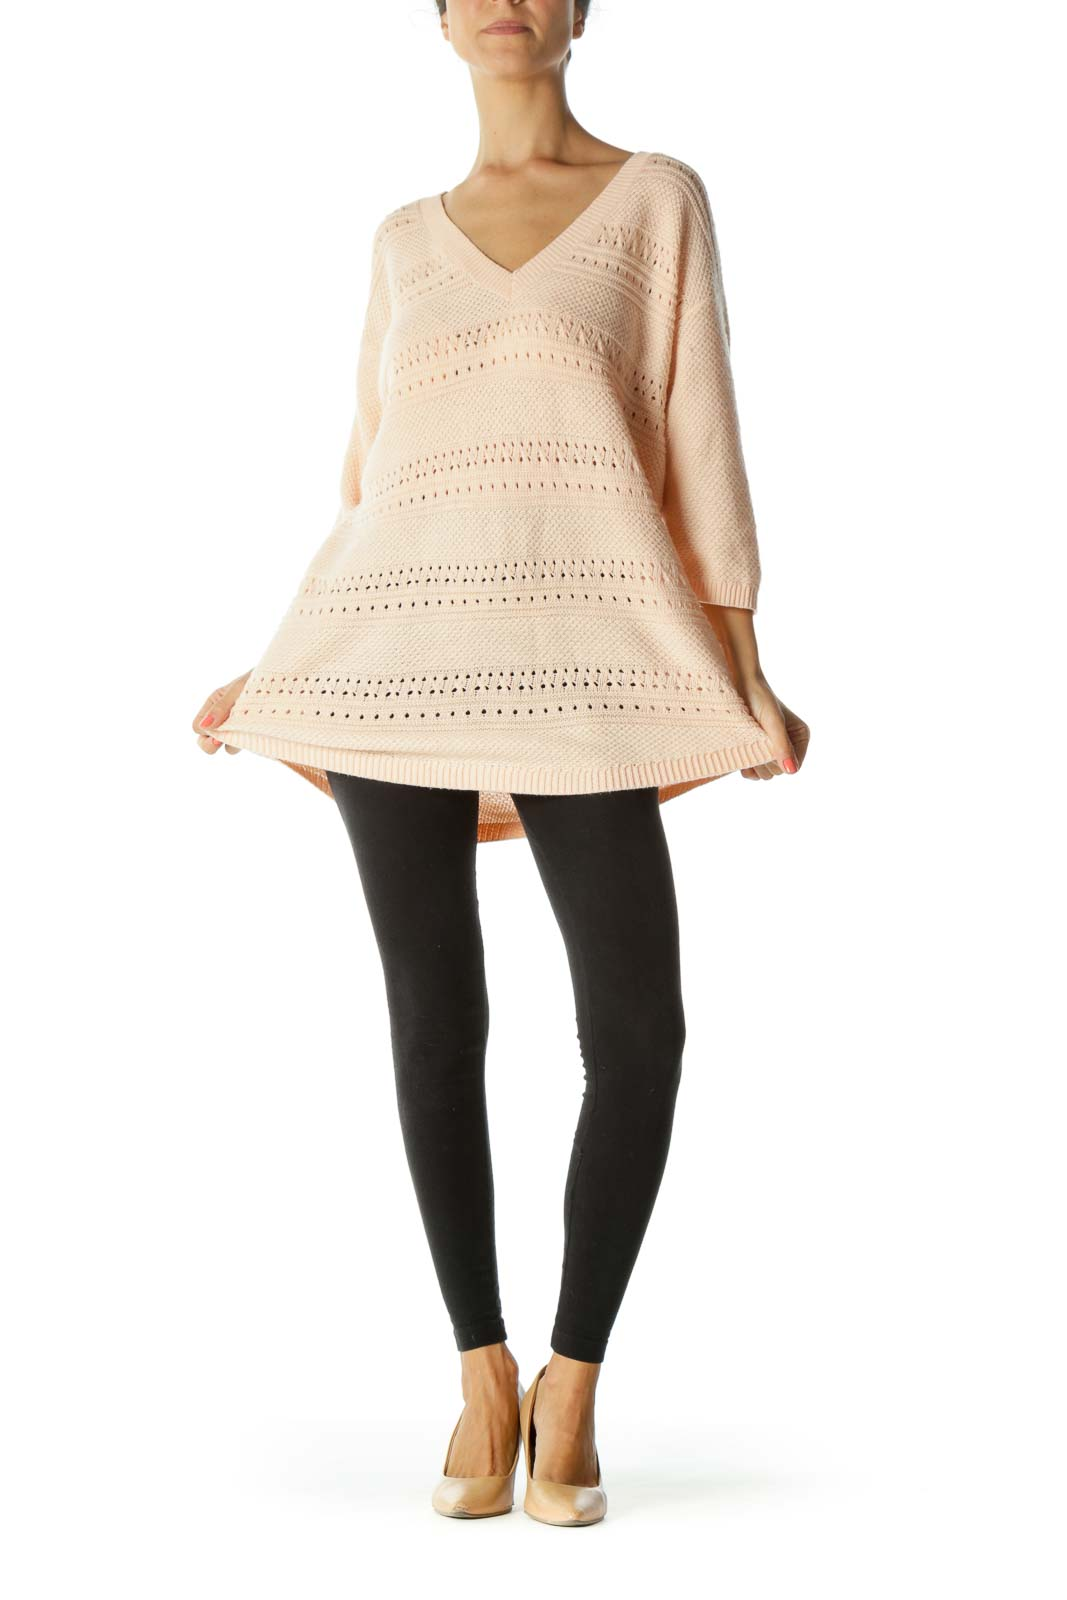 Light Peach V-Neck 3/4-Sleeve See-Through Knit Plus Size Sweater